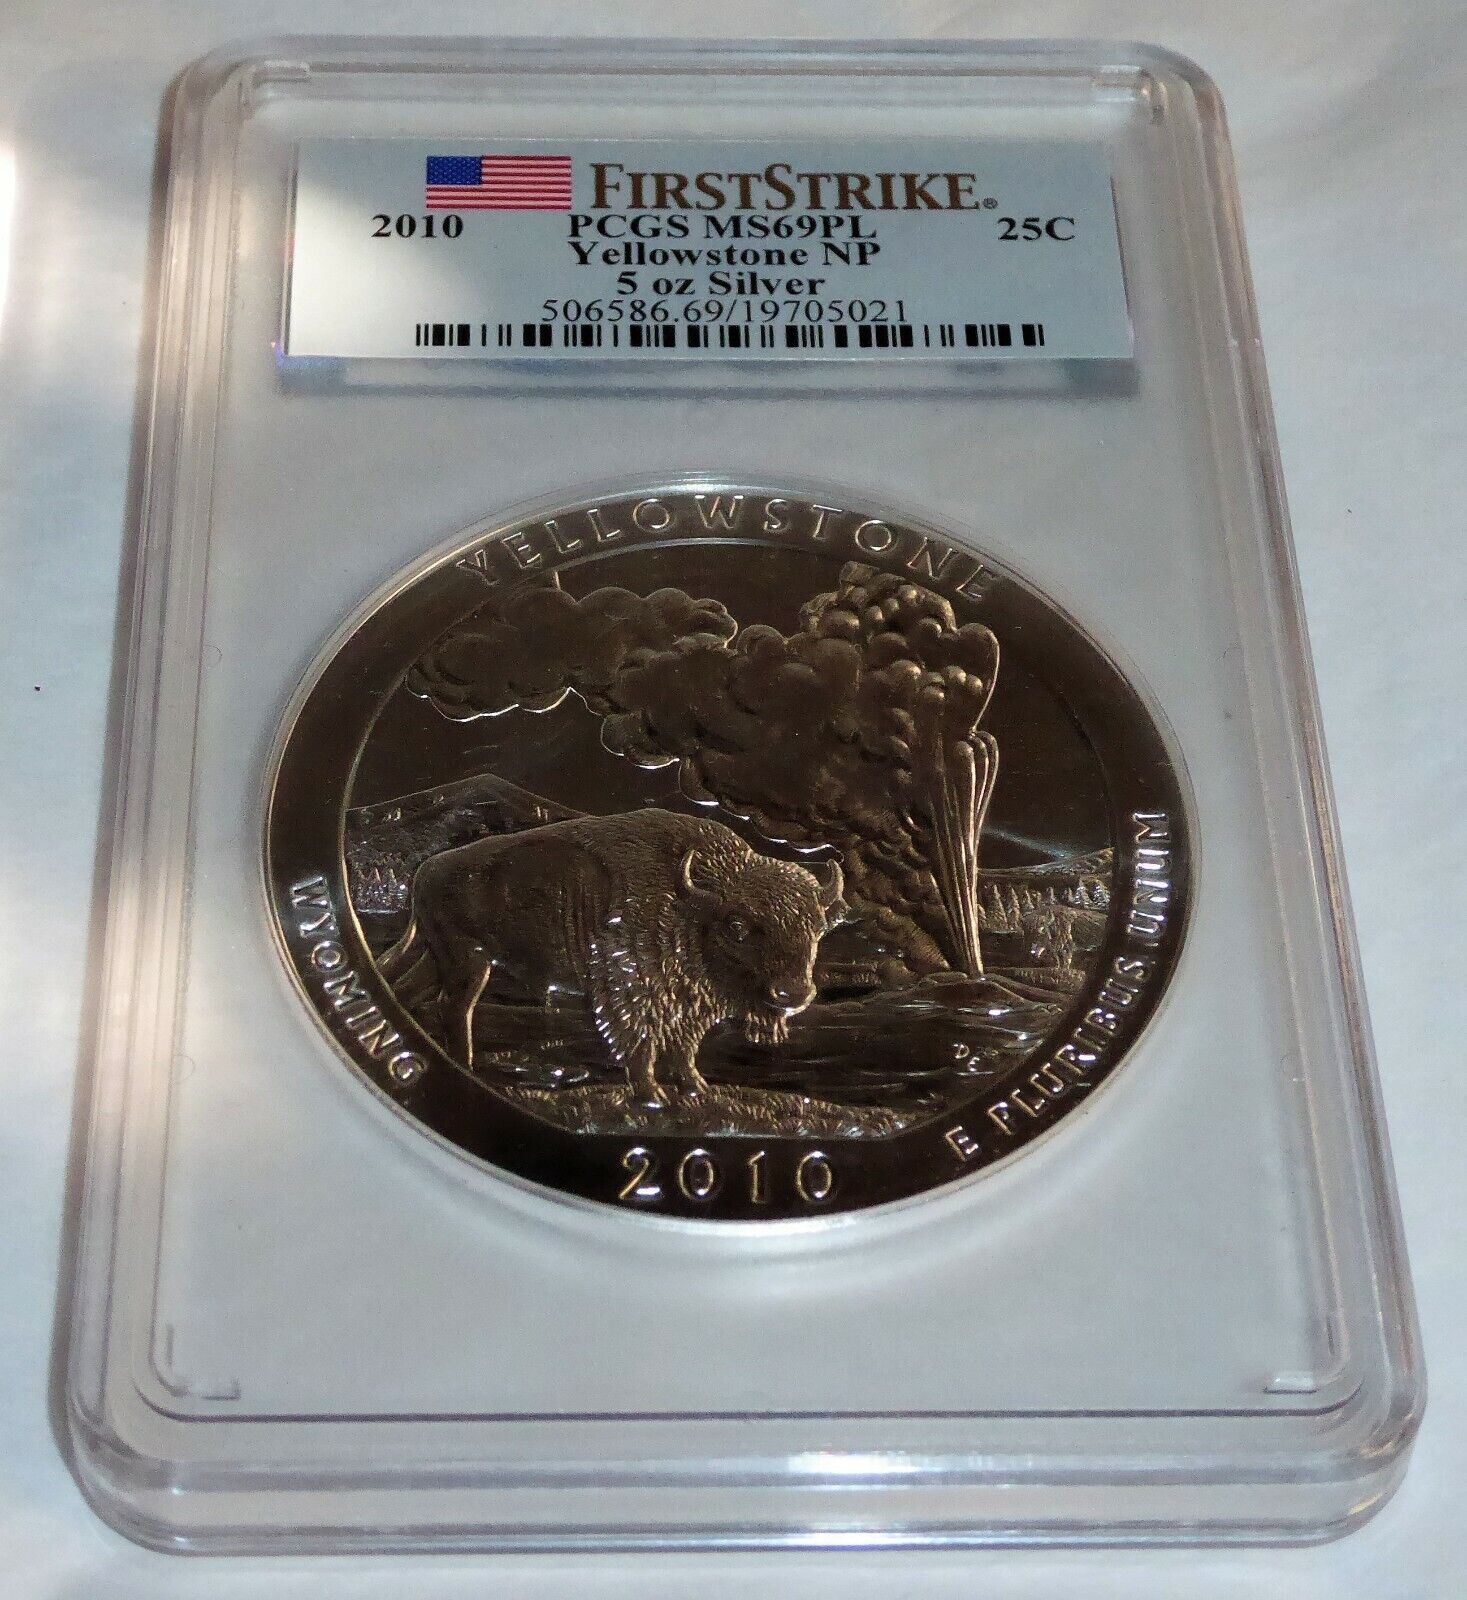 2010 Yellowstone NP 5 oz Silver First Strike 25C PCGS MS69PL Coin Currency💎